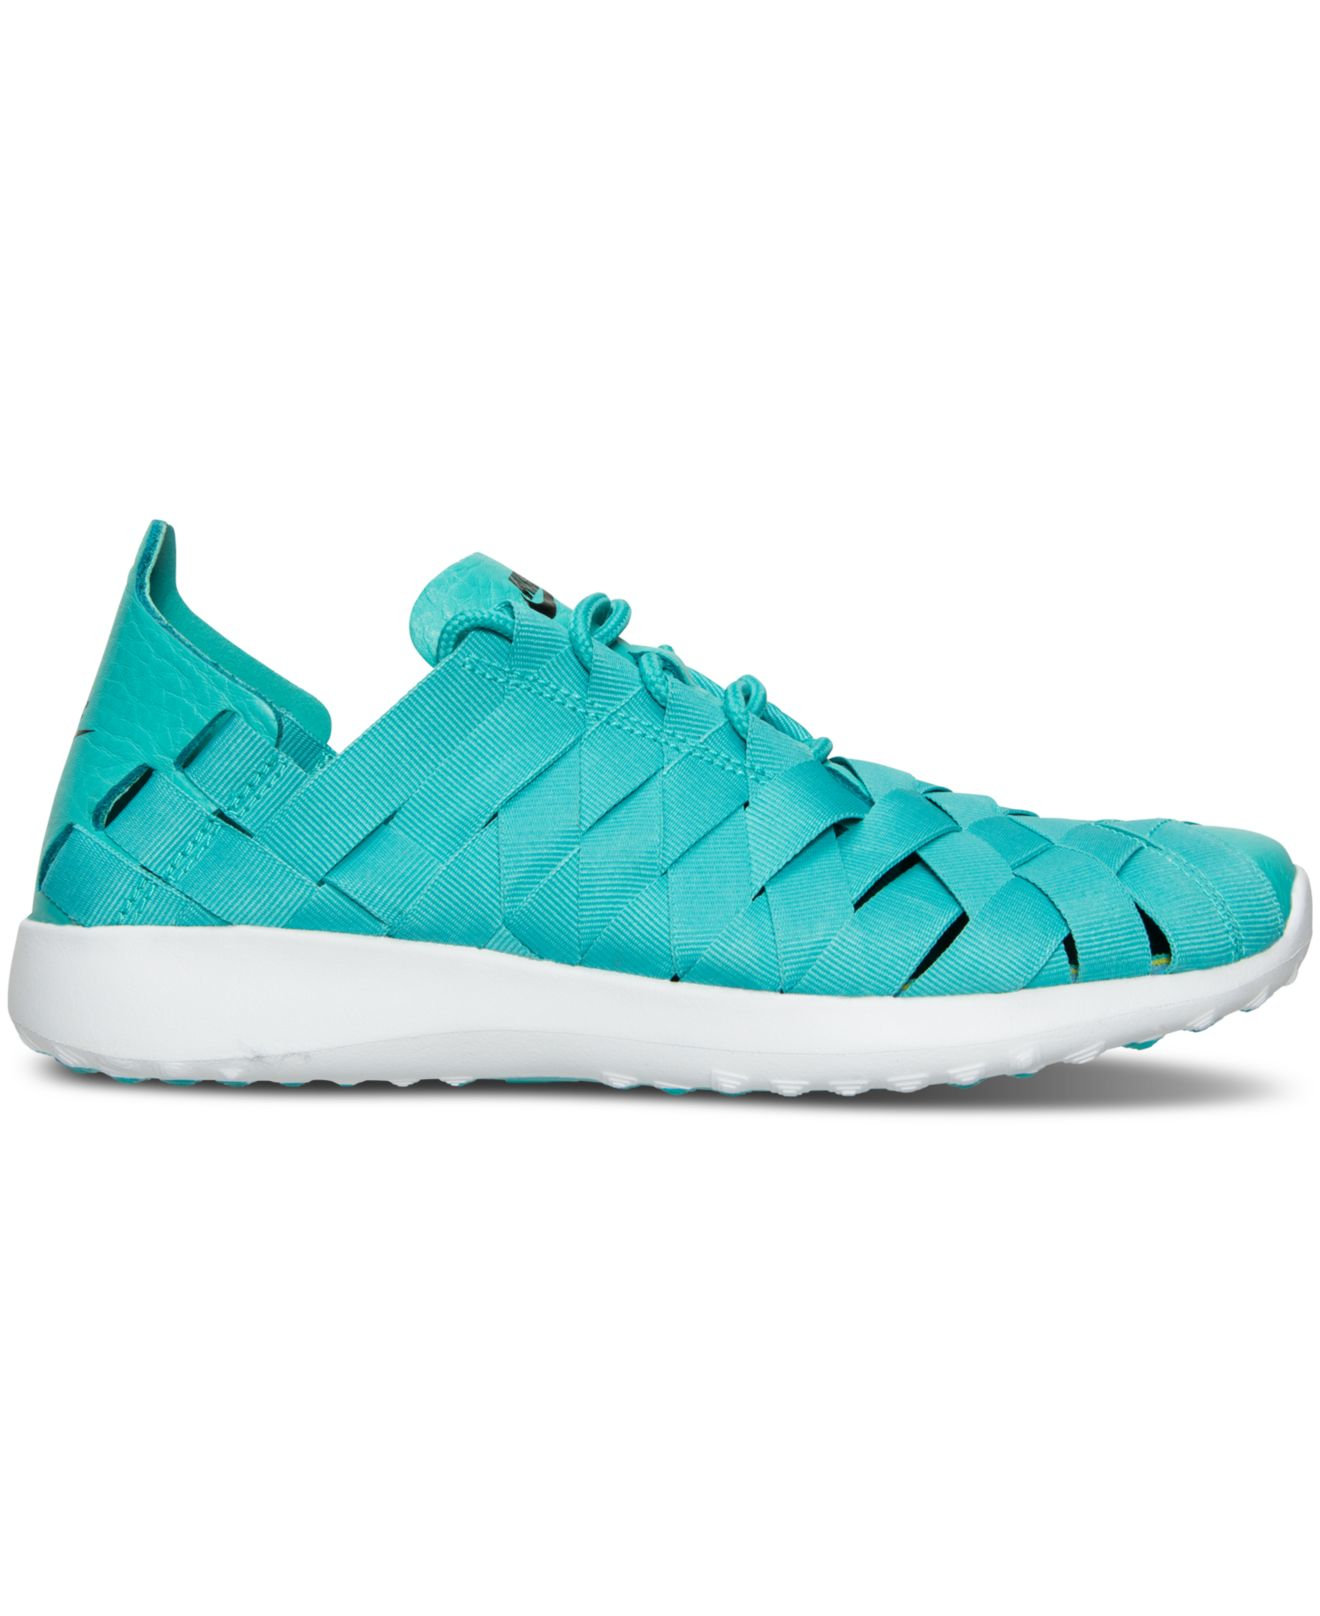 New Nike Roshe Run Woven Women39s Shoe  Polyvore